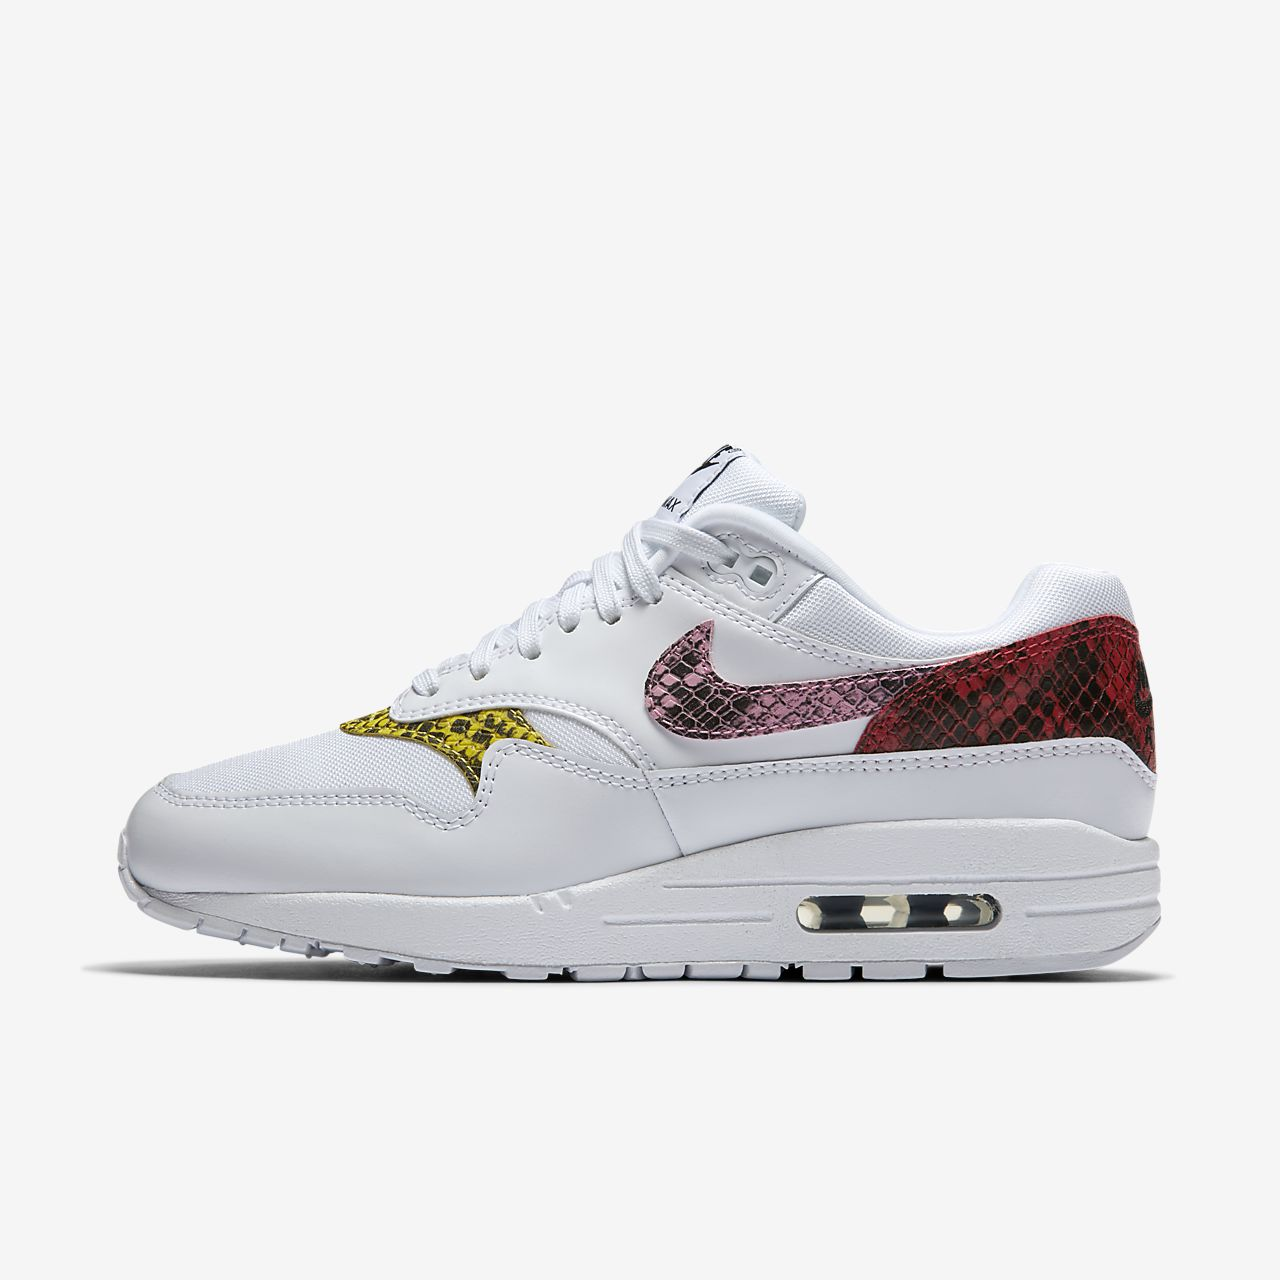 competitive price 12456 a0d44 ... Chaussure Nike Air Max 1 Premium Animal pour Femme